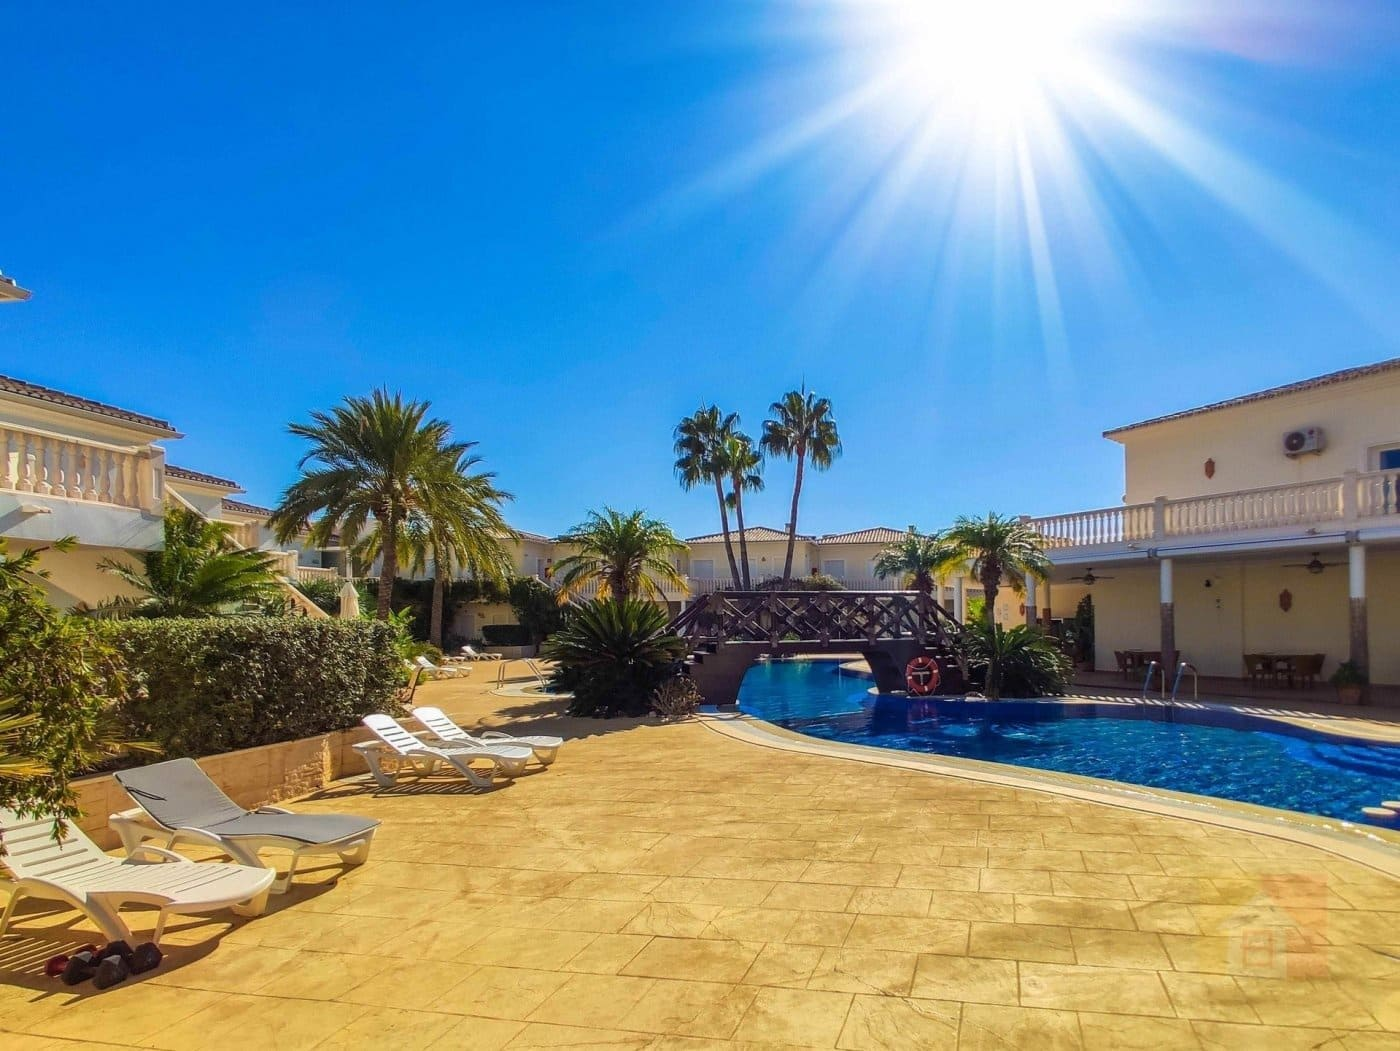 2 bedroom Apartment for sale in Benissa with pool - € 220,000 (Ref: 5954574)